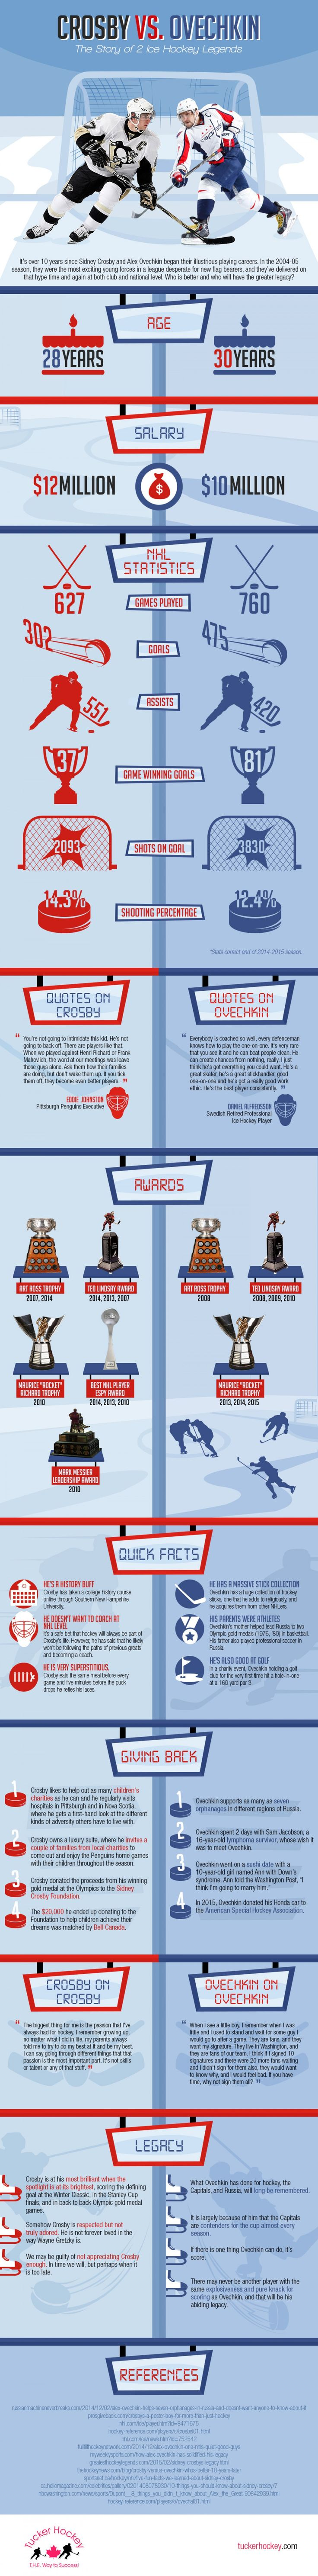 Tucker Hockey has created the following infographic comparing Sidney Crosby and Alex Ovechkin. Both have dominated the NHL for over 10 years. This infographic explores which player is better and who may have the greater legacy.